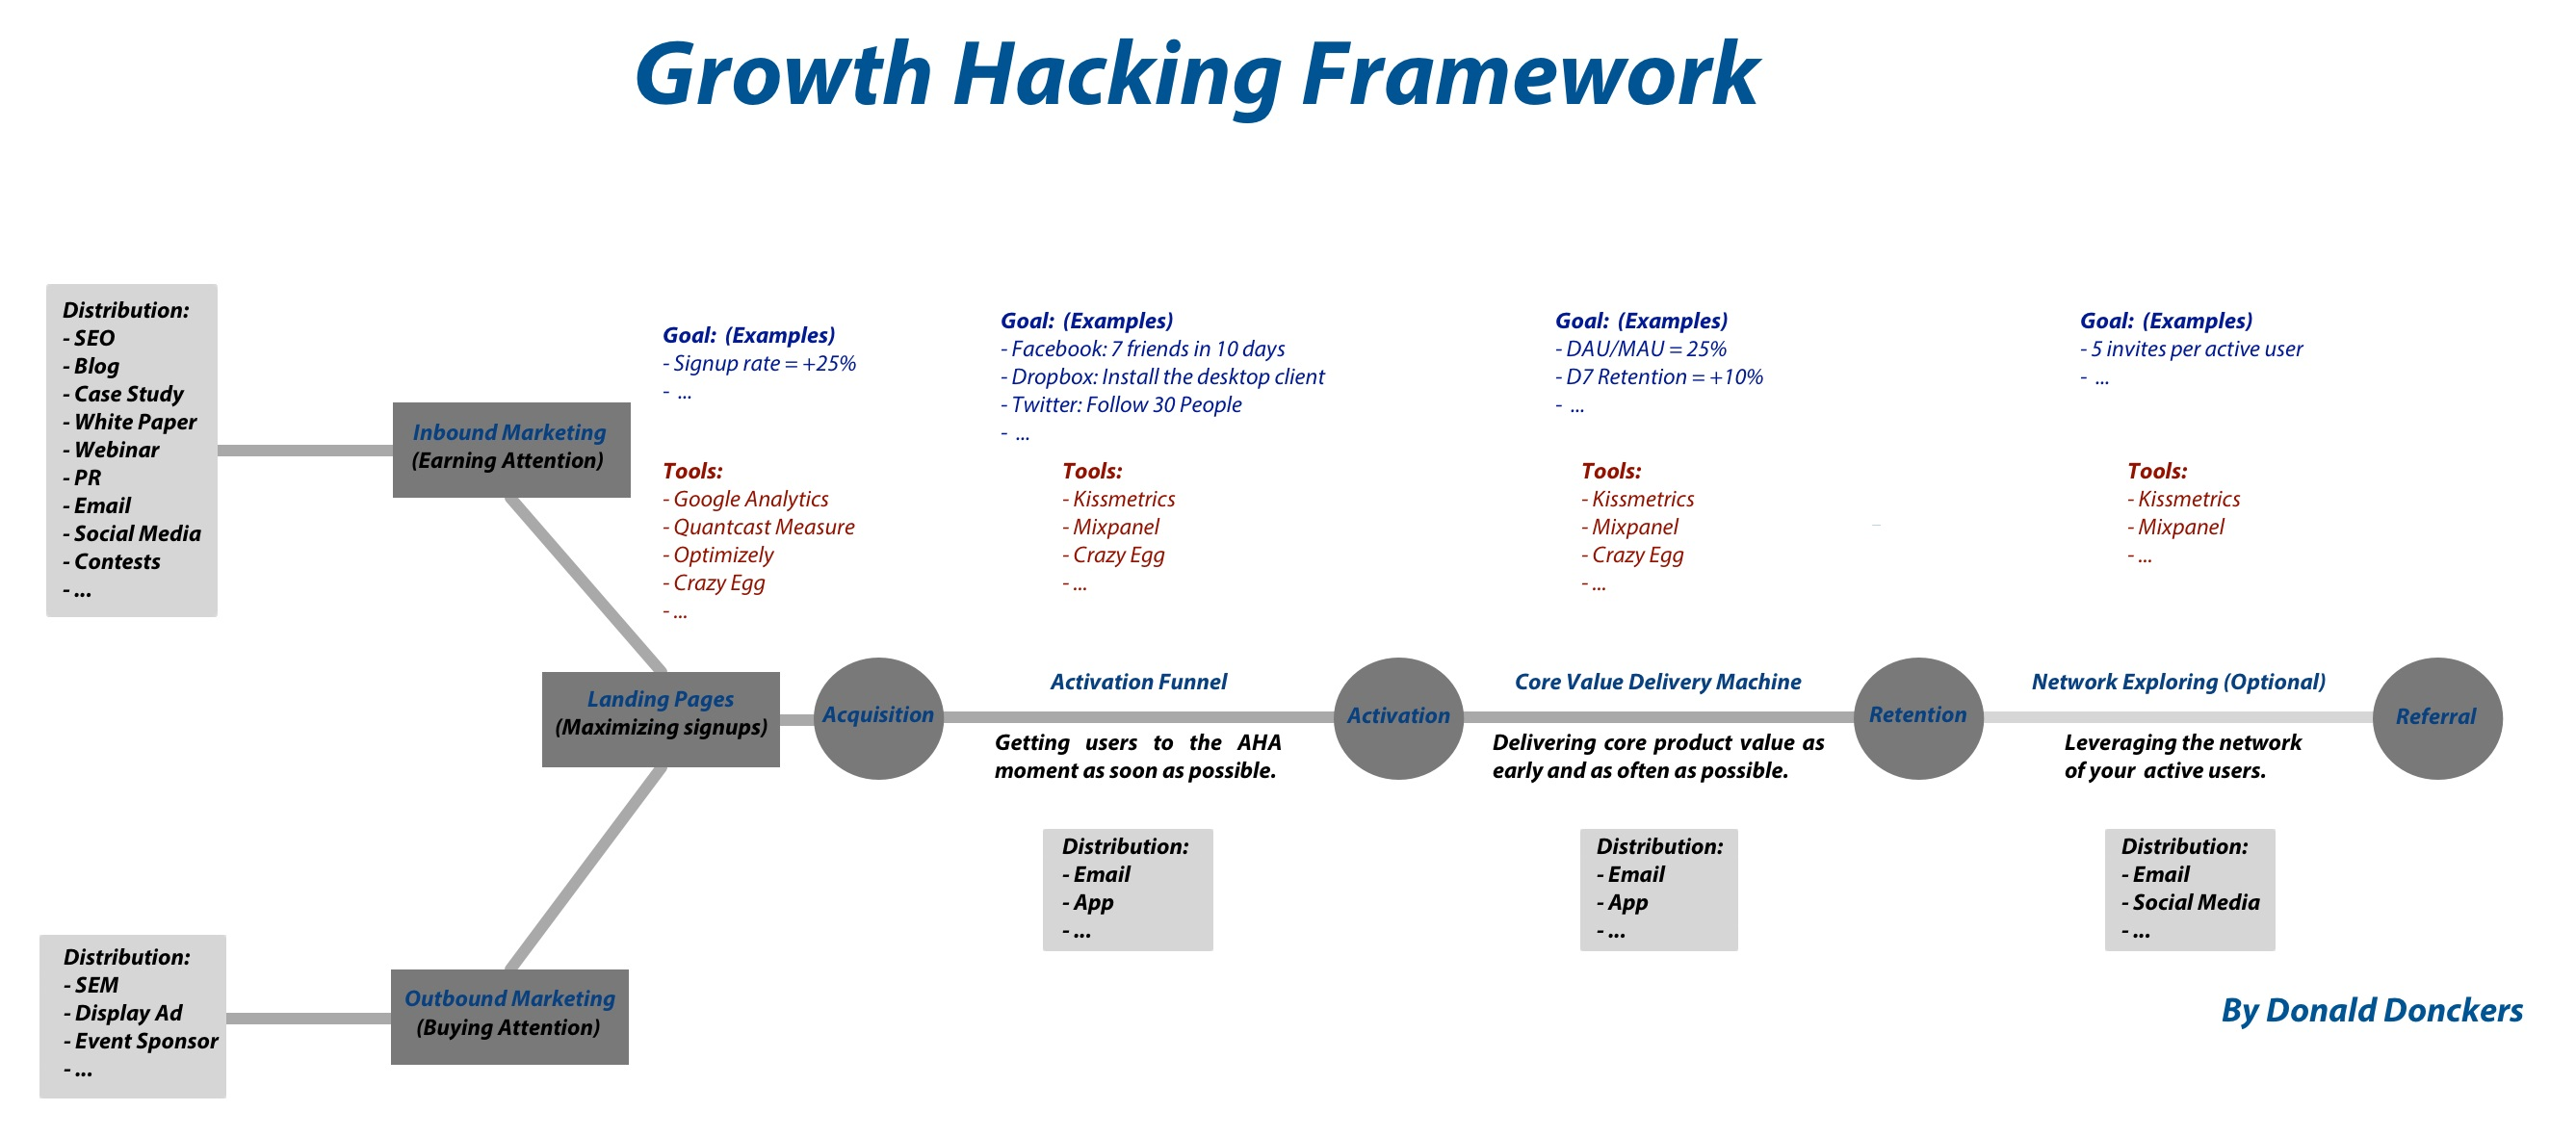 Growth hacking framework